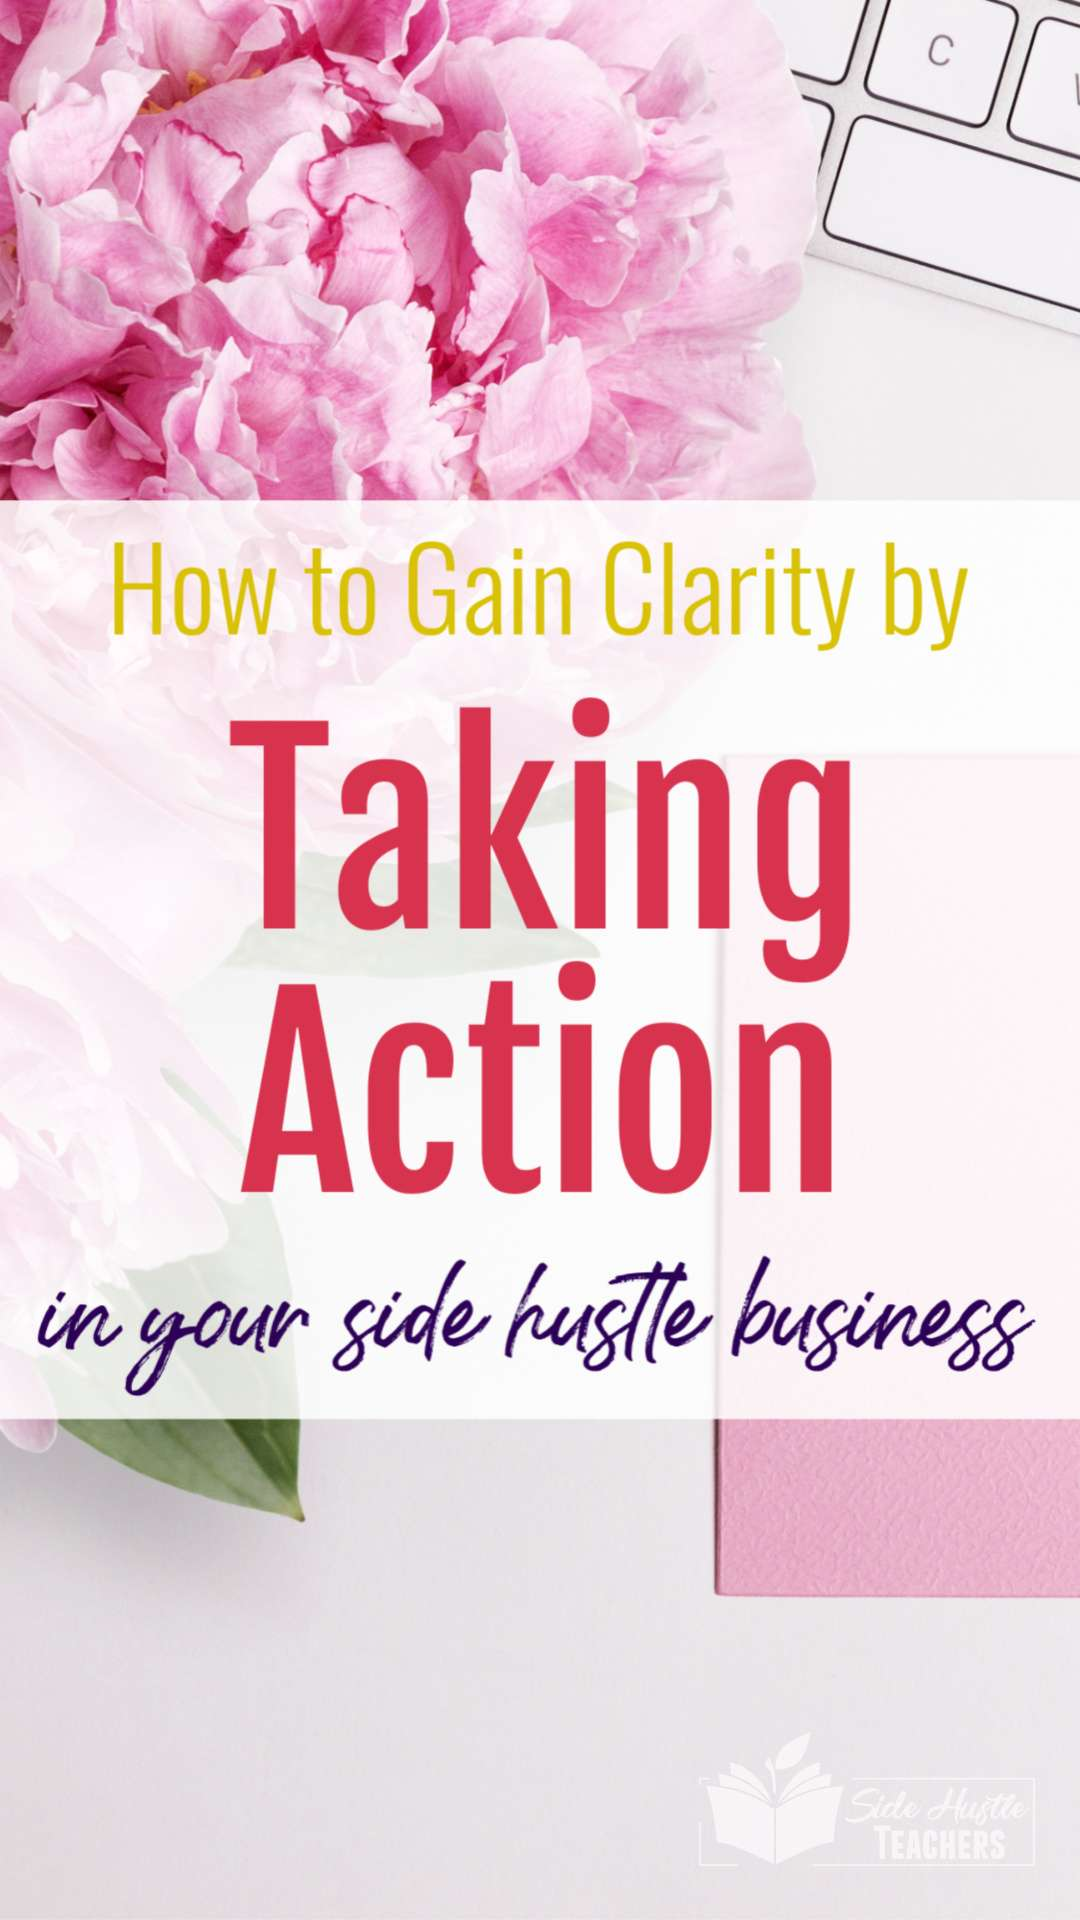 How to Gain Clarity Through Taking Action